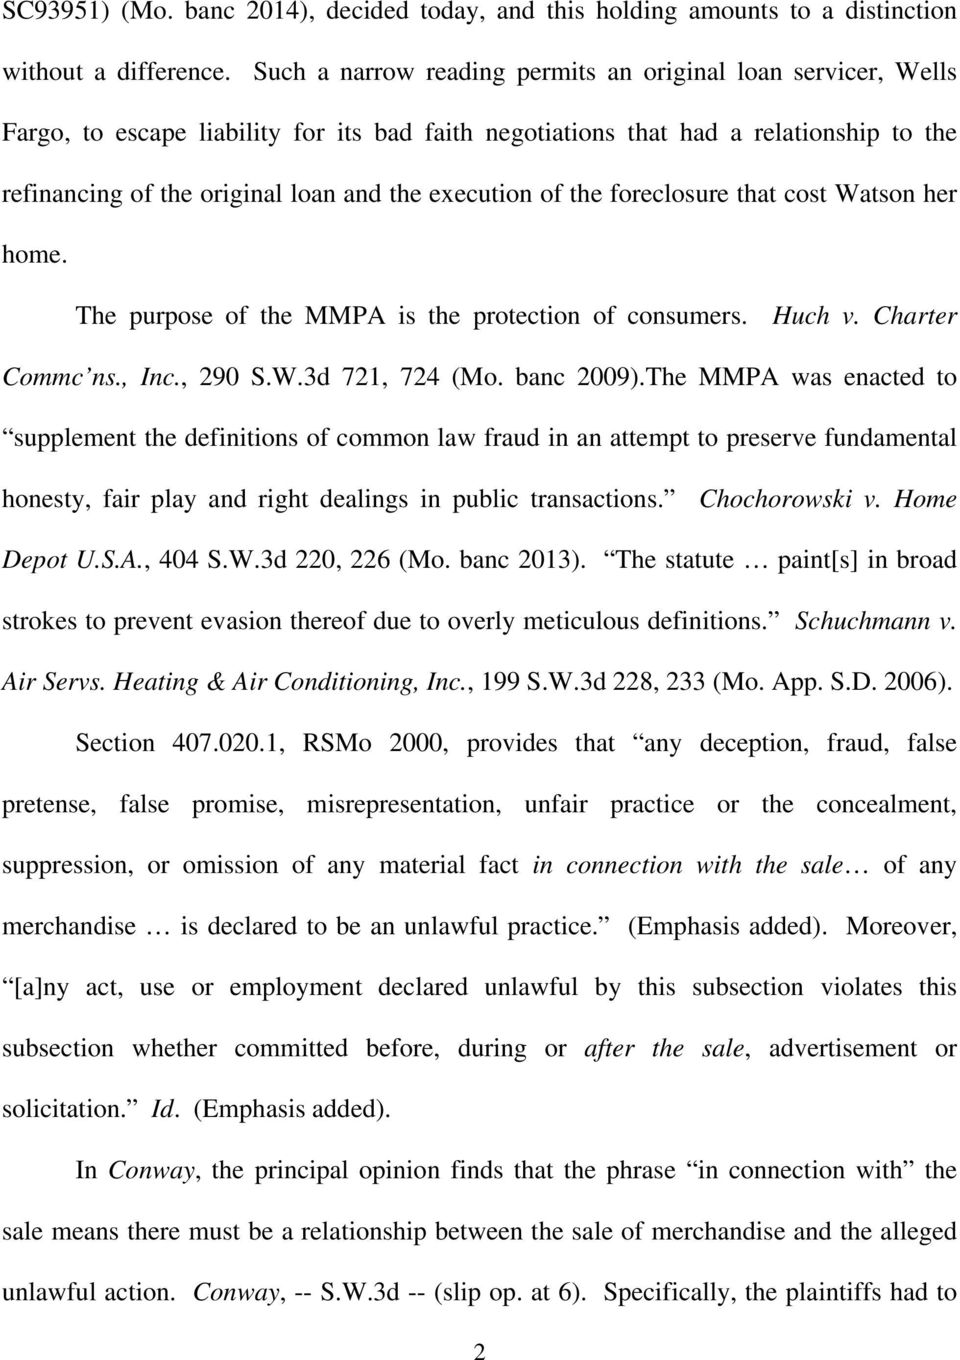 execution of the foreclosure that cost Watson her home. The purpose of the MMPA is the protection of consumers. Huch v. Charter Commc ns., Inc., 290 S.W.3d 721, 724 (Mo. banc 2009.